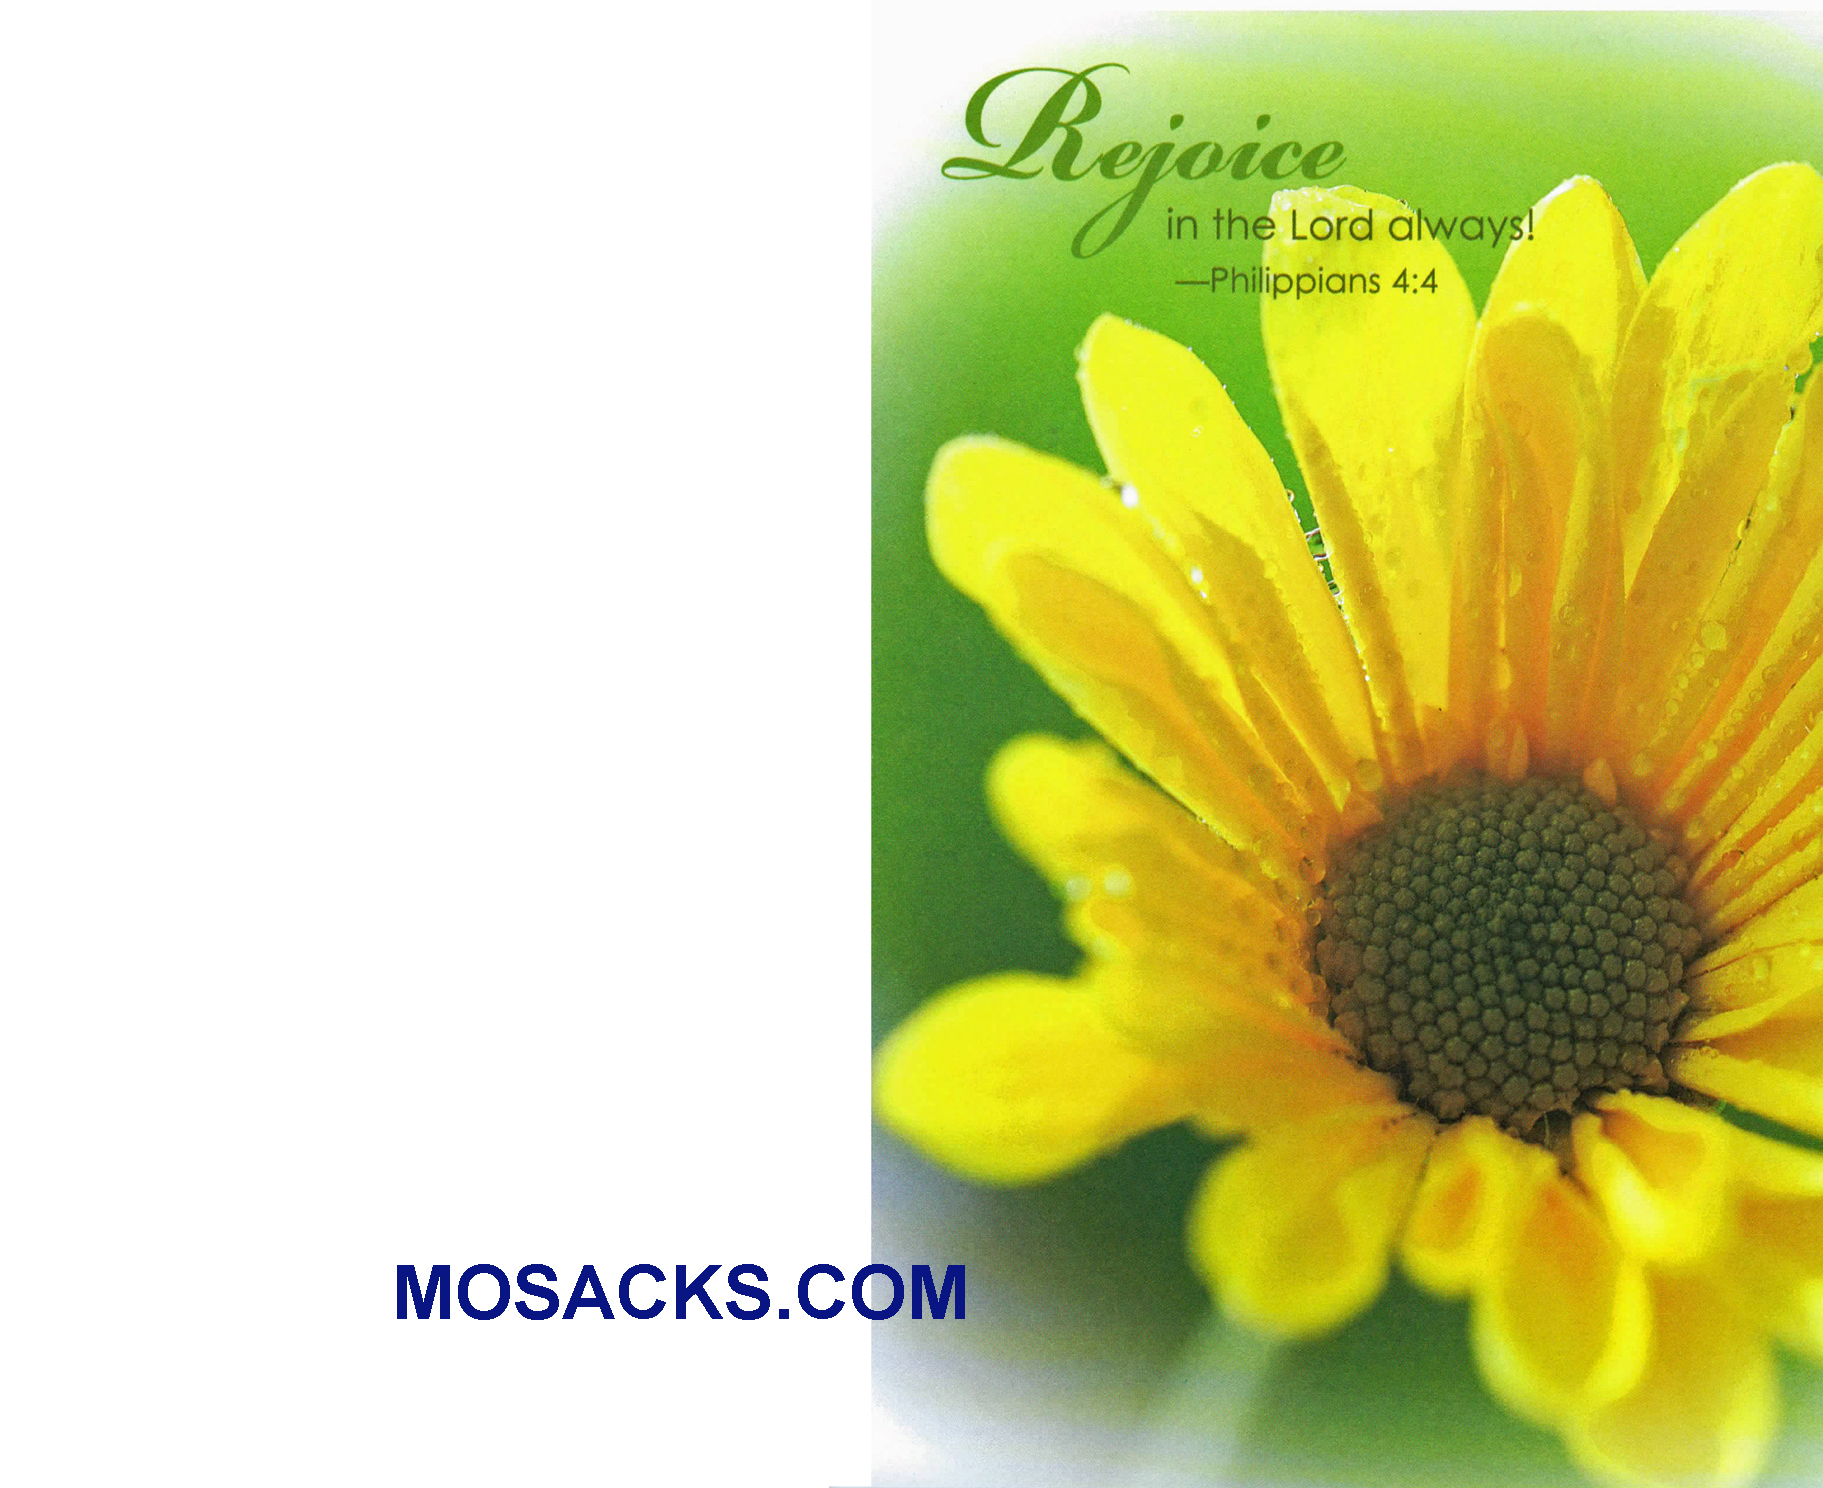 Bulletin Covers Rejoice In The Lord Always 100 Pack-08140705621, General Cover